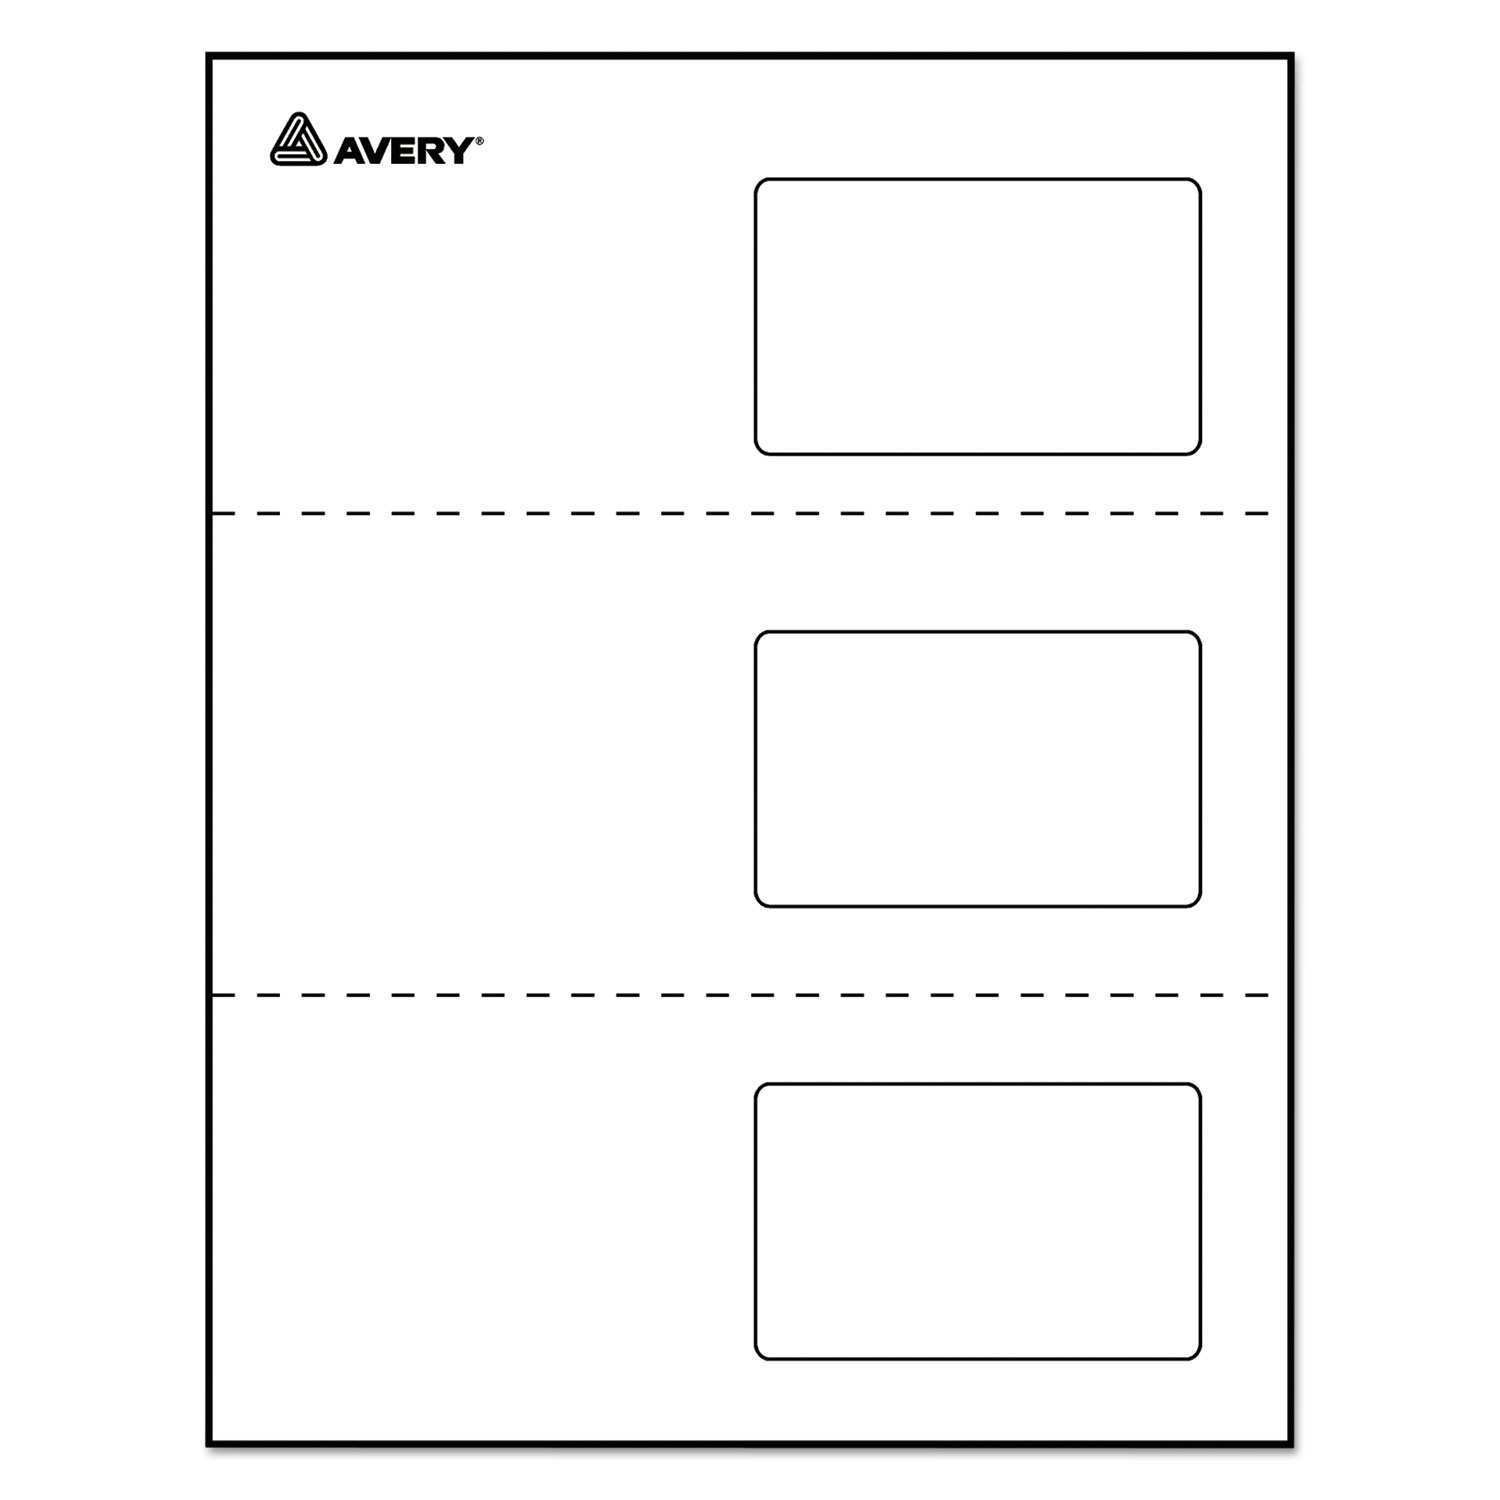 73 Visiting Avery Laminated Id Card Template in Word with Avery Laminated Id Card Template